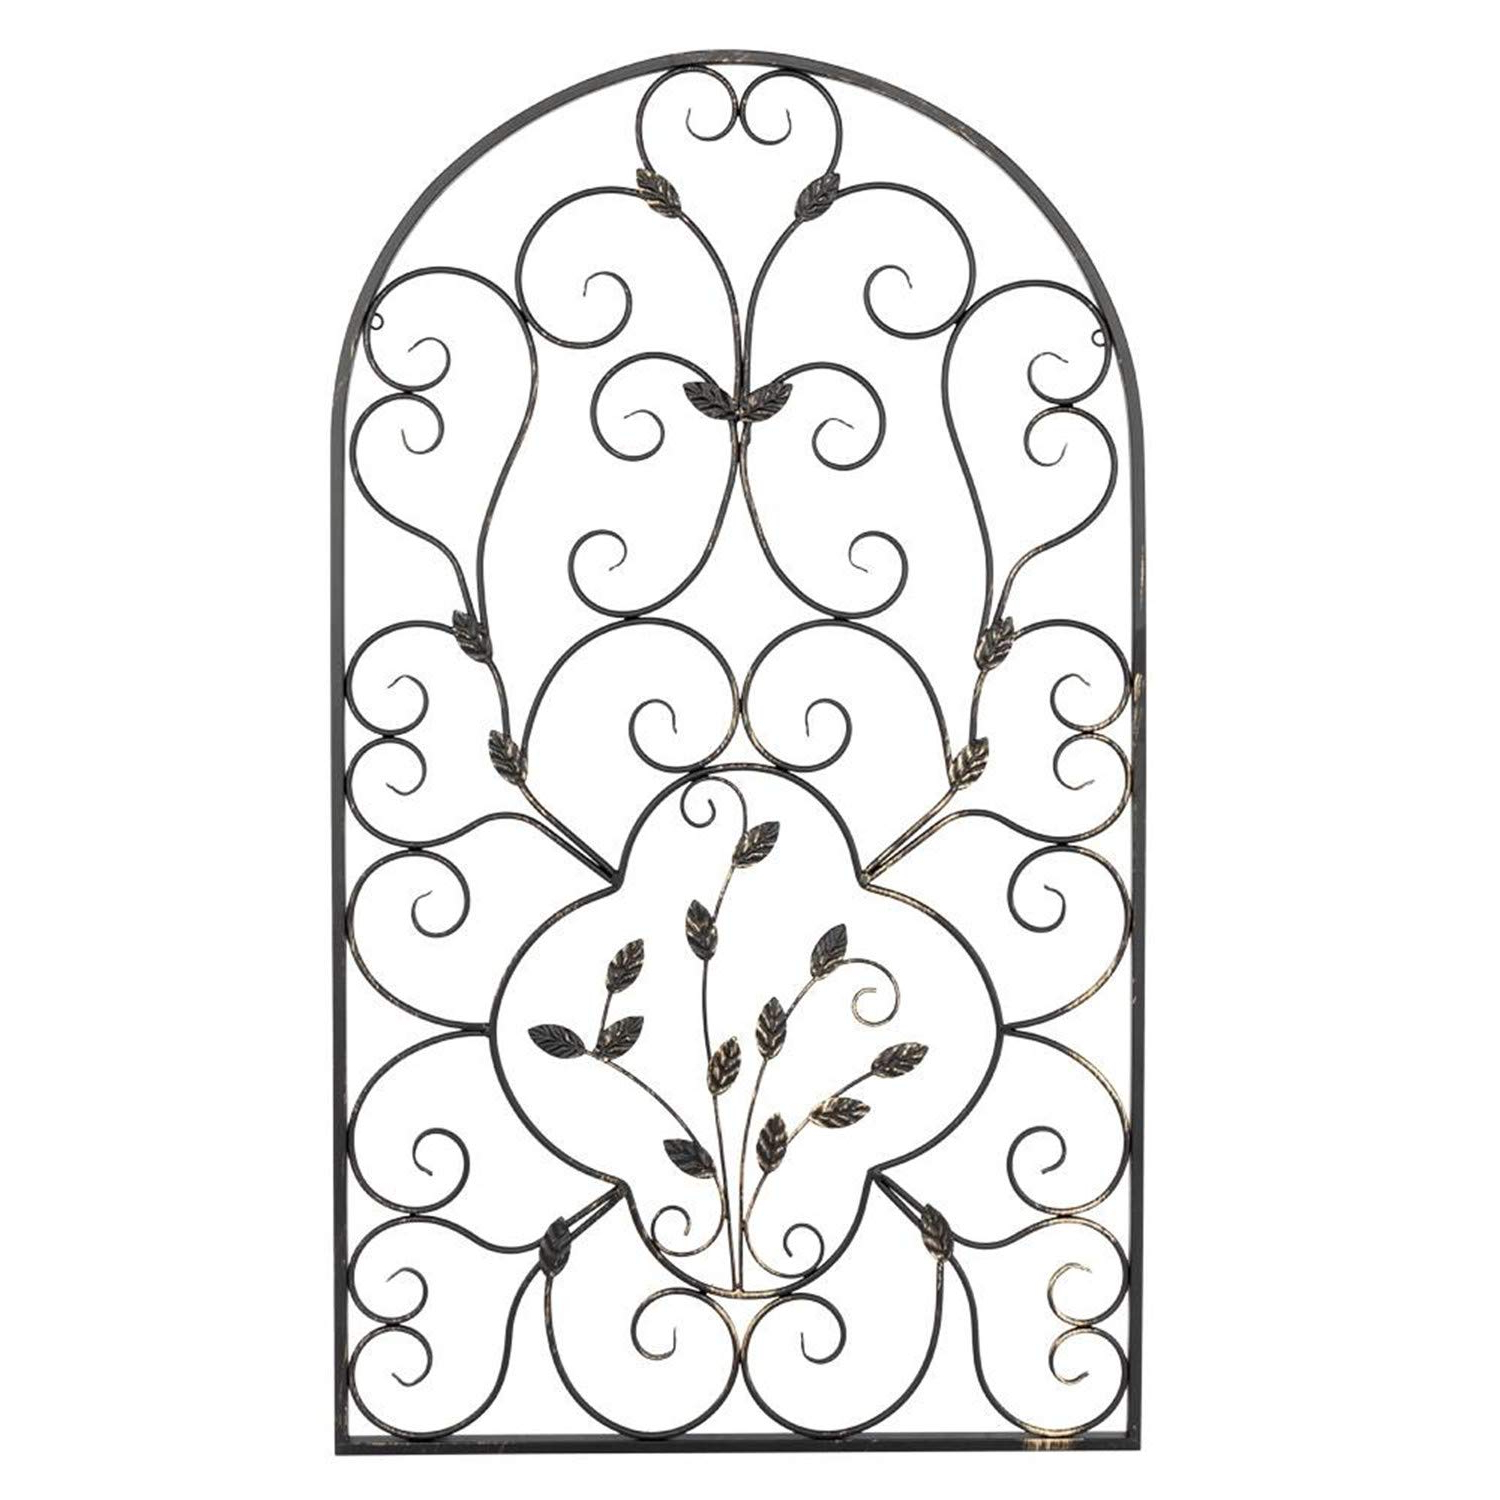 "Amazon: Shutao 41"" Semi Circular Retro Decorative Spanish Arch Intended For 2019 Ornamental Wood And Metal Scroll Wall Decor (Gallery 19 of 20)"